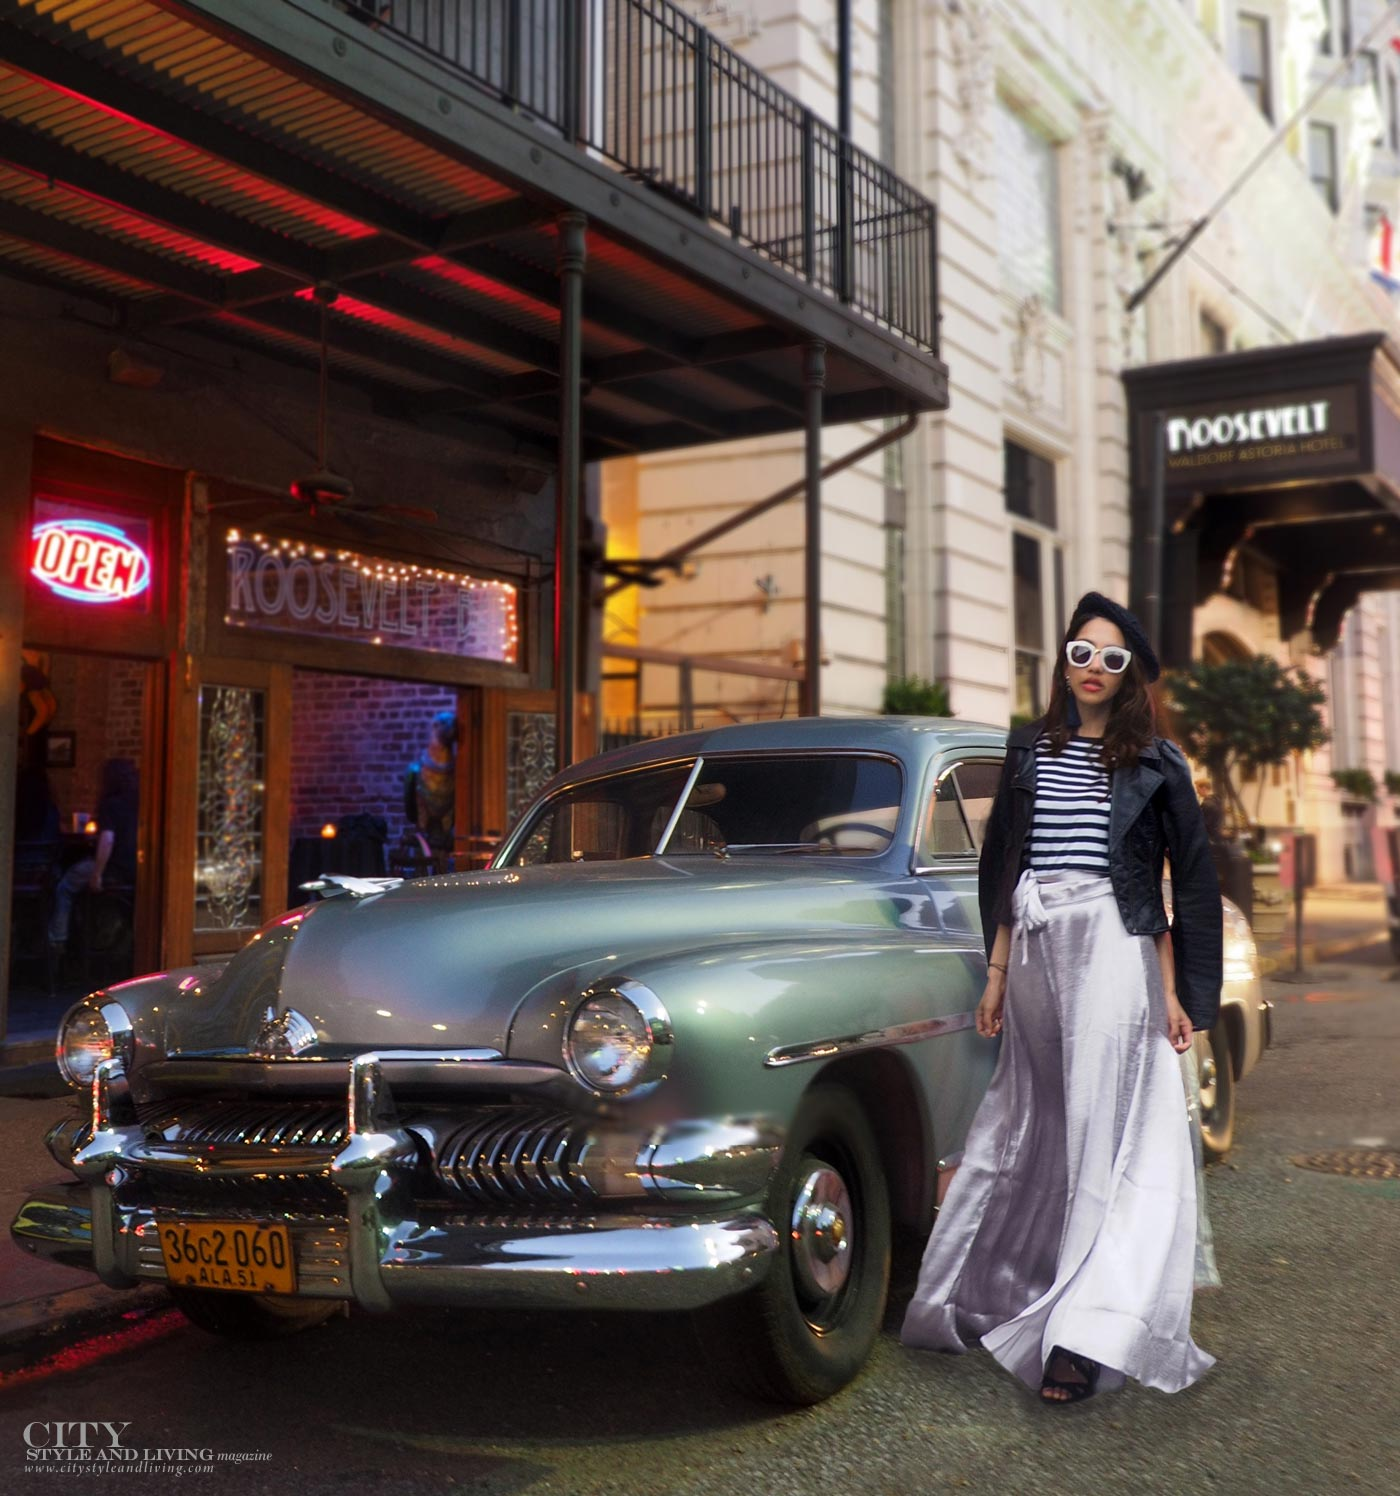 City style and living magazine The Editors Notebook style fashion blogger Shivana Maharaj new orleans old fashioned car